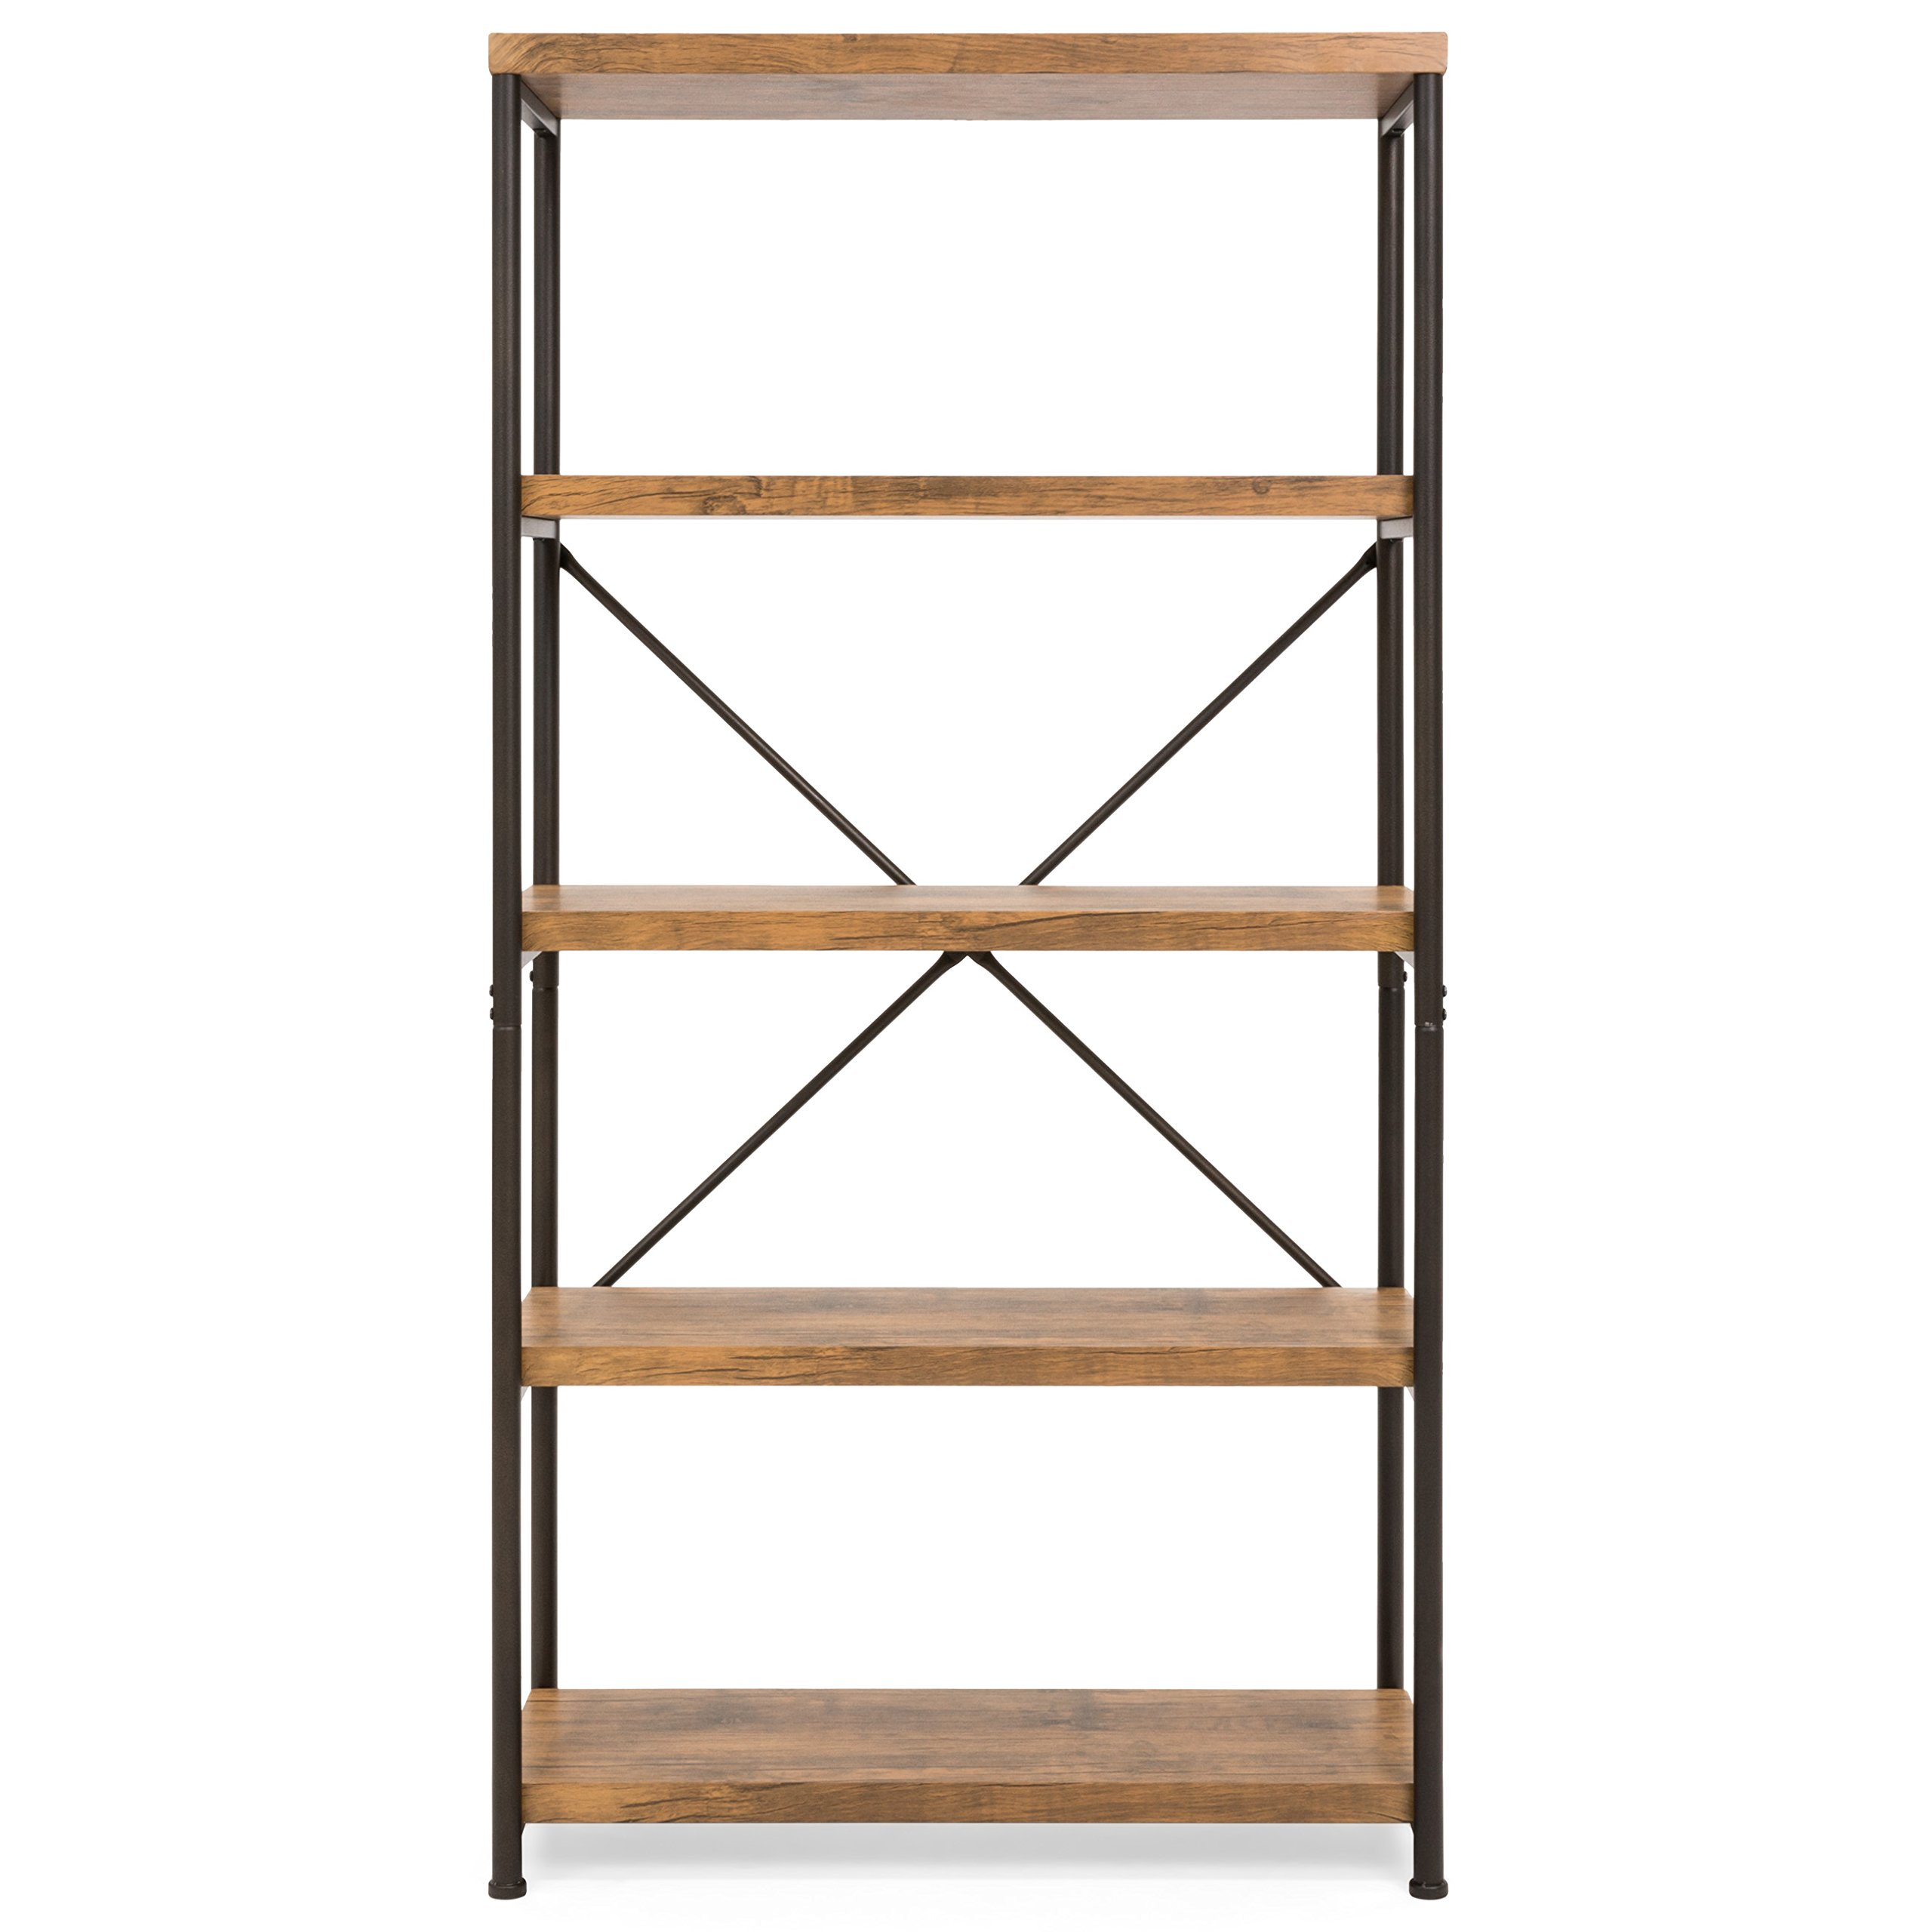 Best Choice Products 4-Tier Rustic Industrial Bookshelf Display Decor Accent w/Metal Frame, Wood Shelves - Brown by Best Choice Products (Image #4)